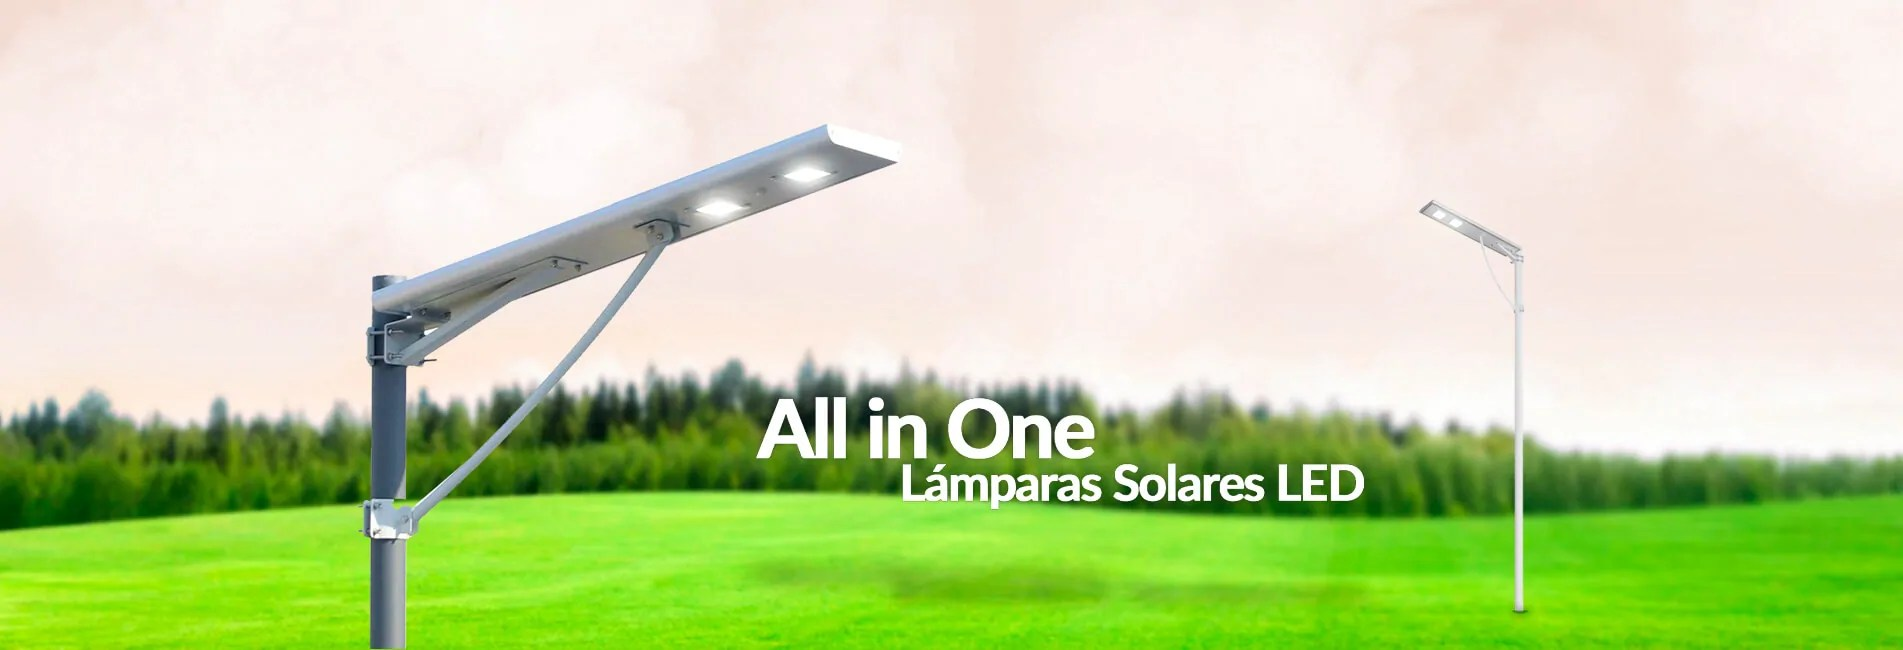 Lámparas Solares All in ONE